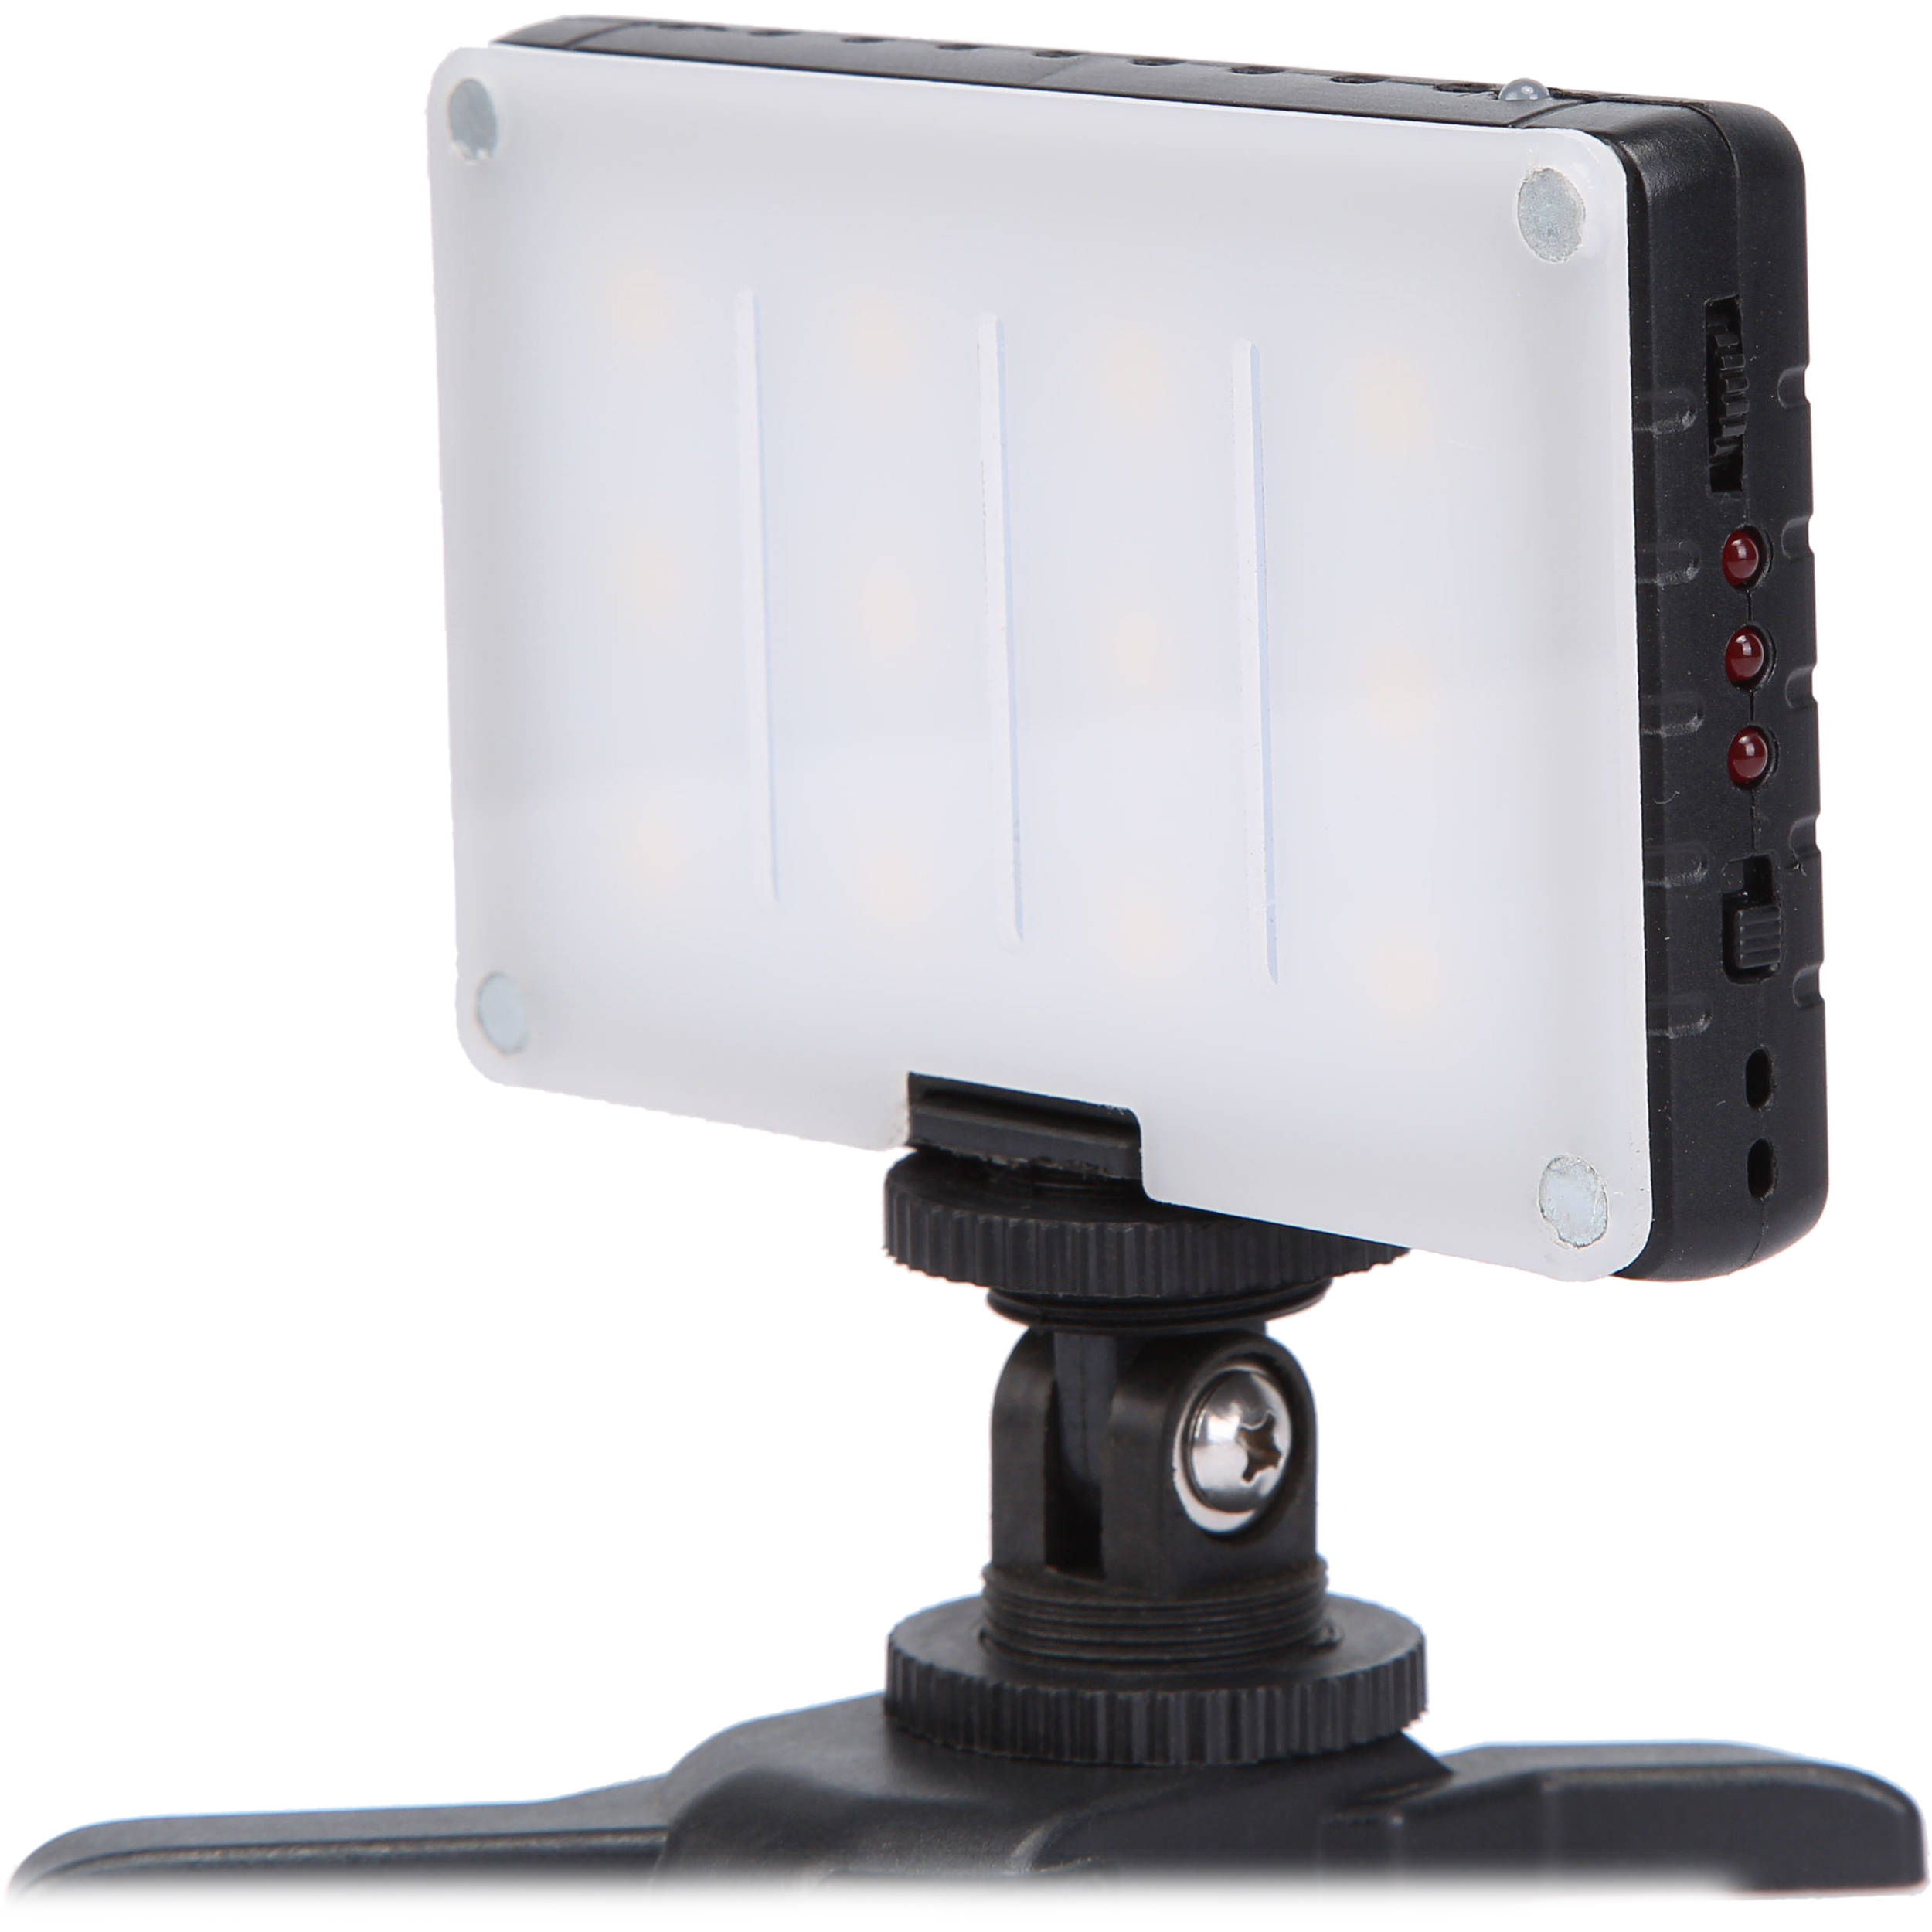 Gvb gear compact daylight on camera light with built in gvbpl12 gvb gear compact daylight on camera light with built in battery arubaitofo Images